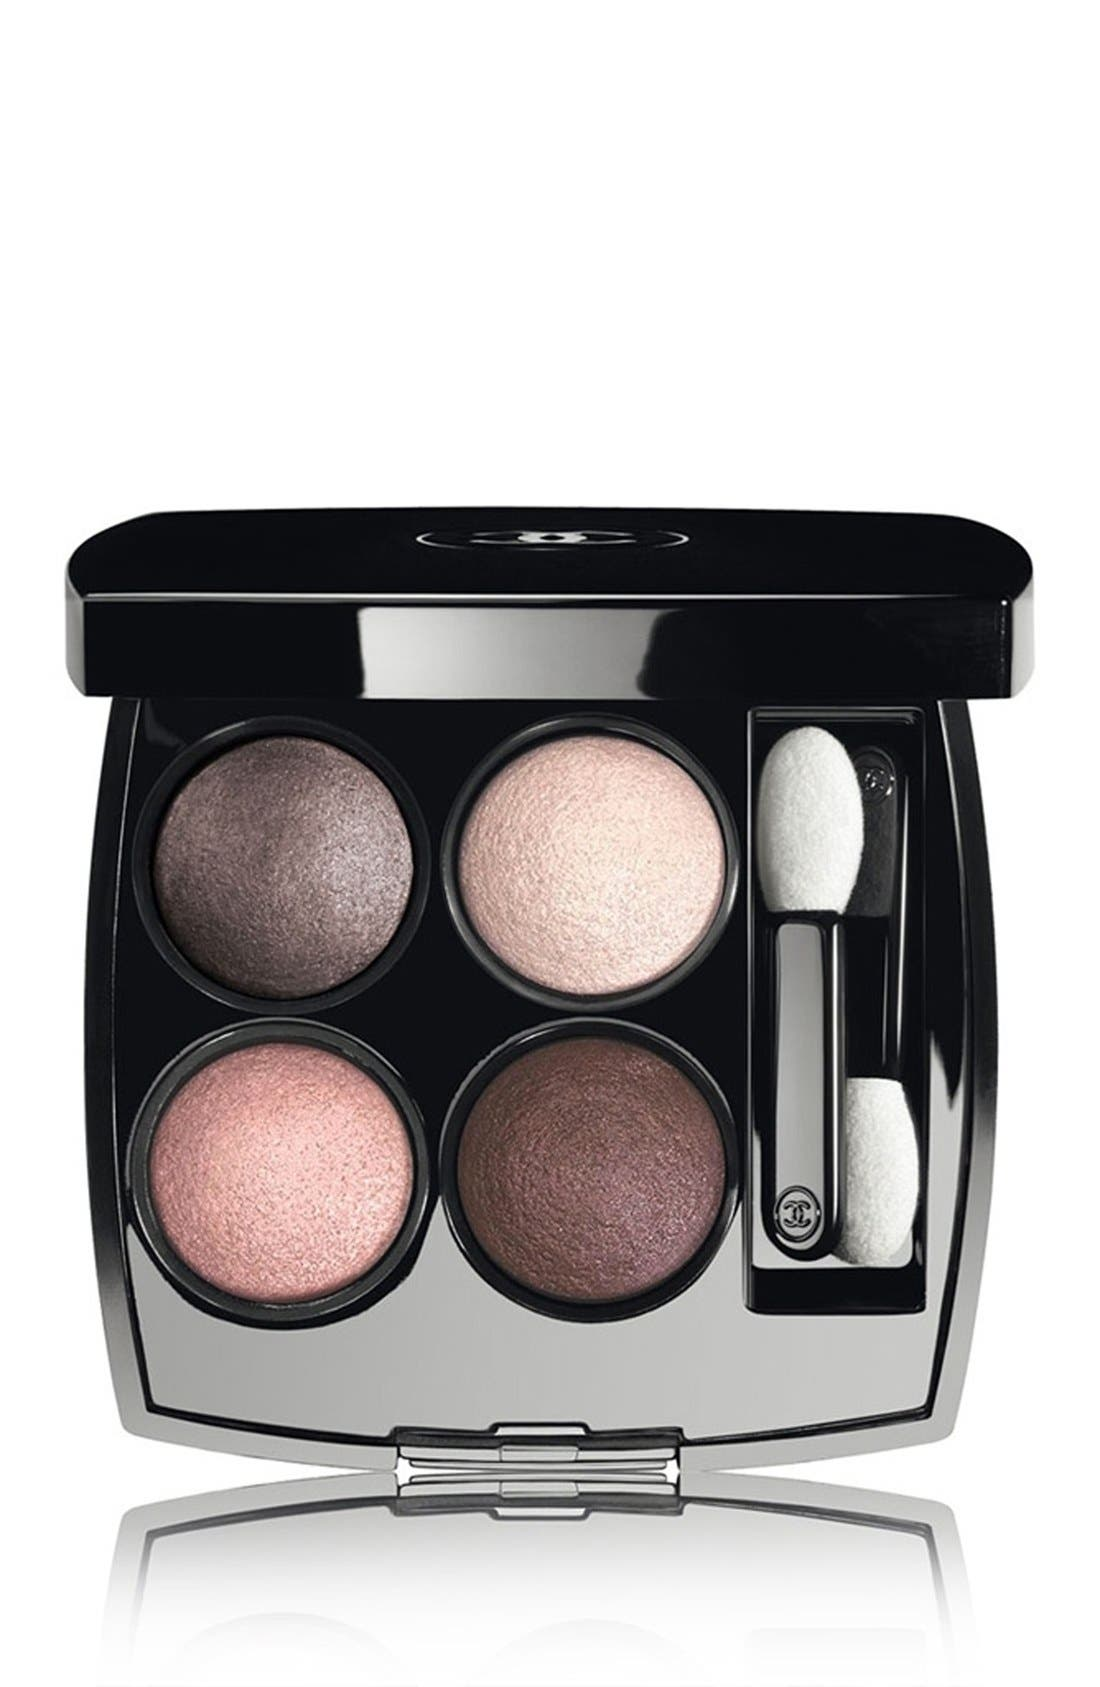 LES 4 OMBRES<br />Multi-Effect Quadra Eyeshadow,                         Main,                         color, 202 TISSE CAMELIA